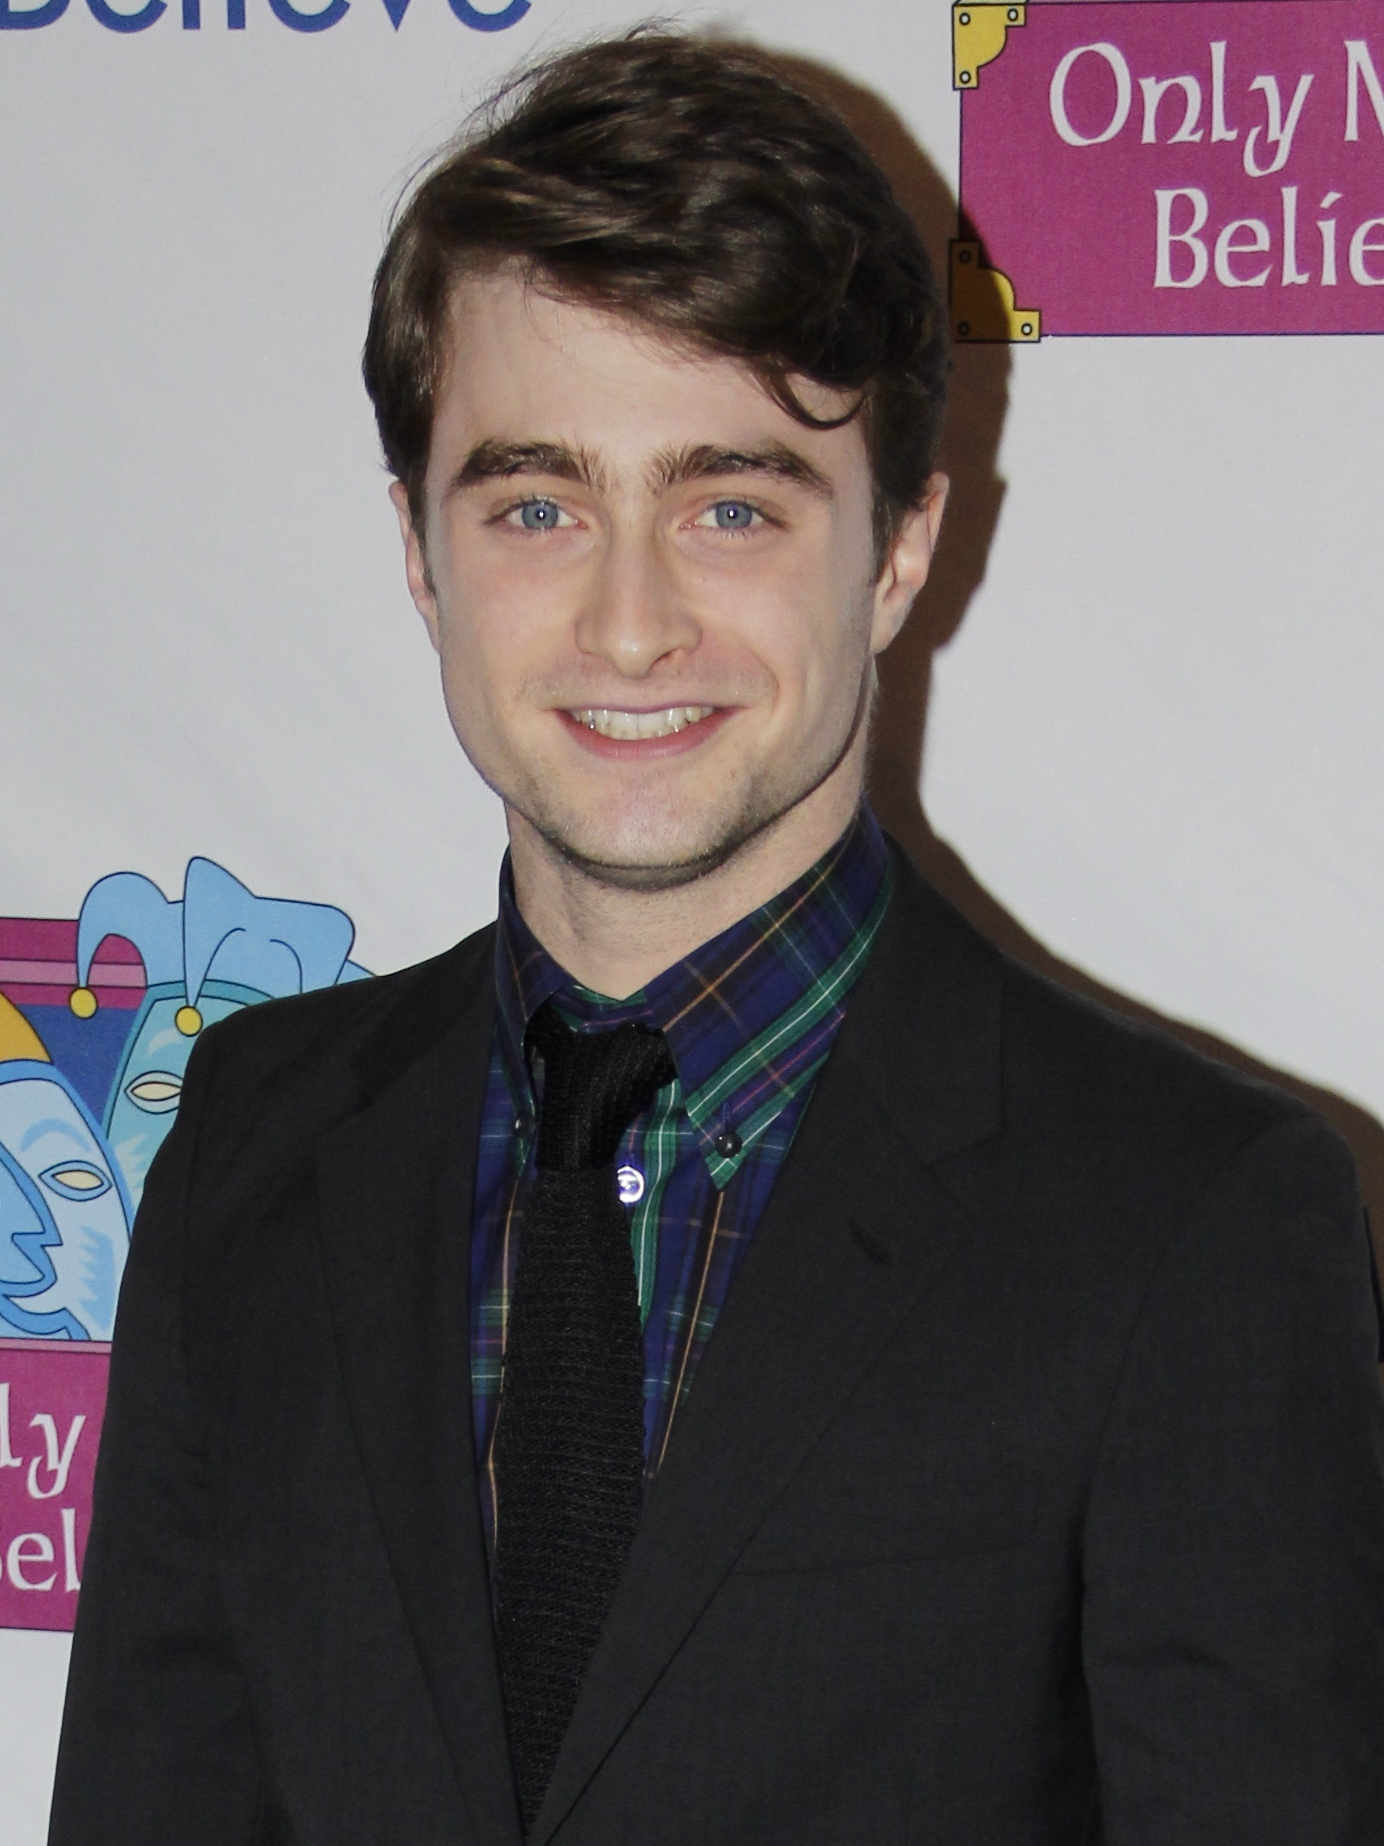 Daniel Radcliffe earned a  million dollar salary, leaving the net worth at 110 million in 2017